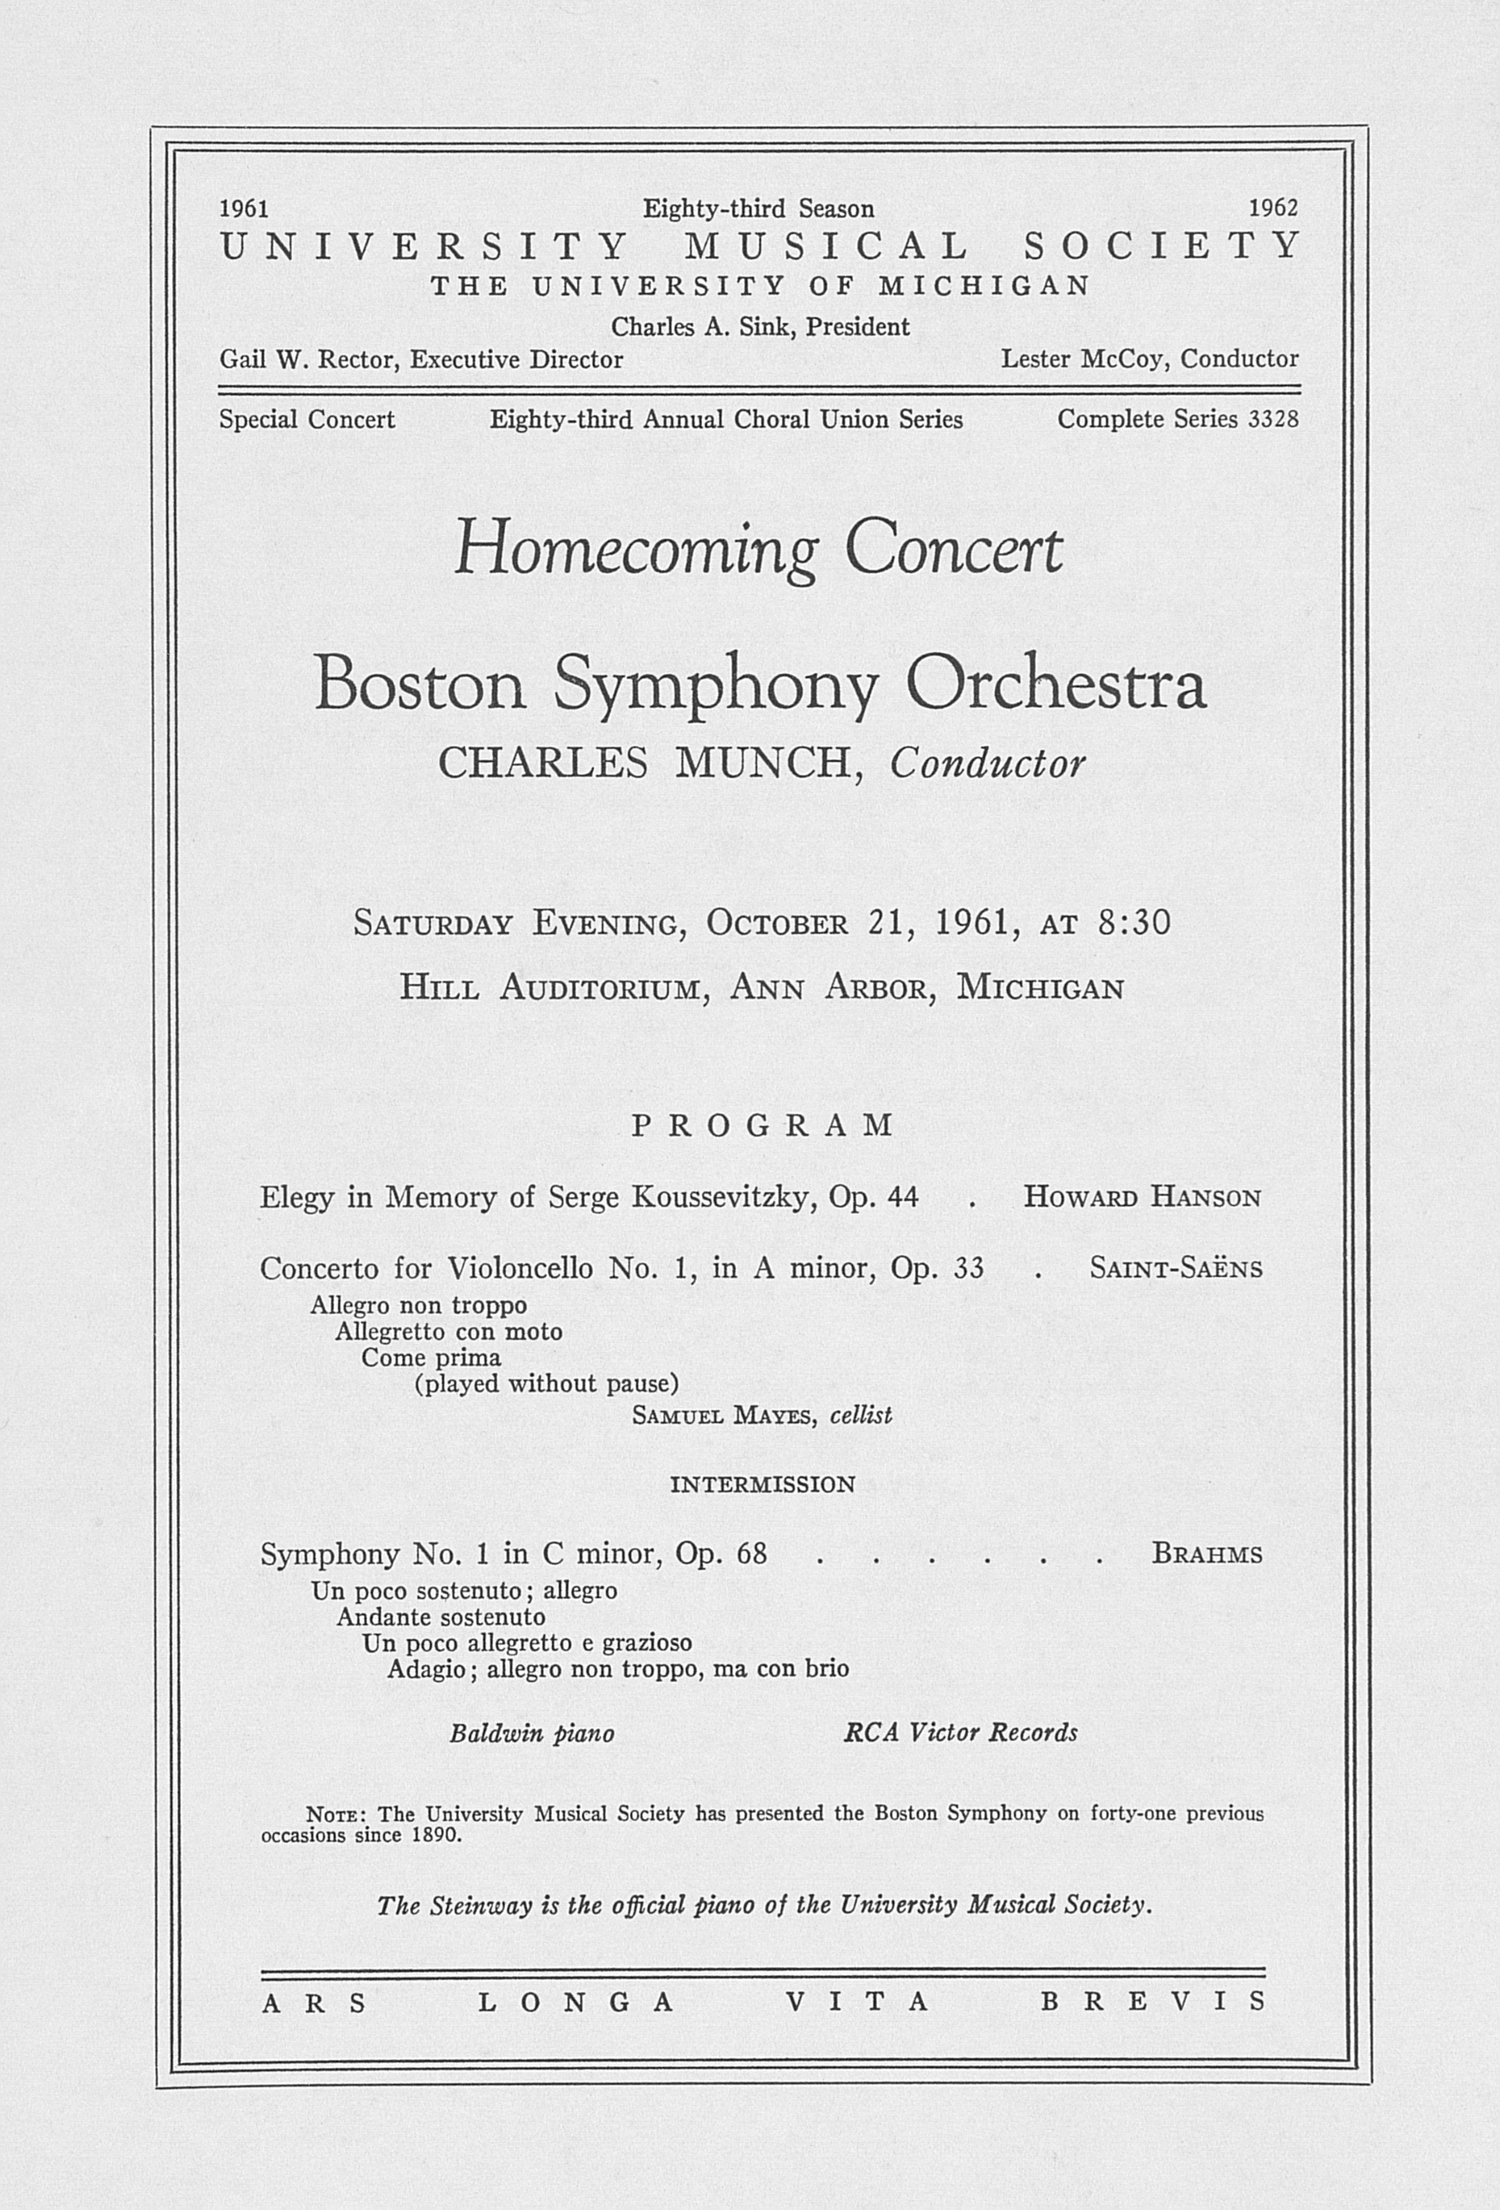 UMS Concert Program, October 21, 1961: Homecoming Concert -- Boston Symphony Orchestra image